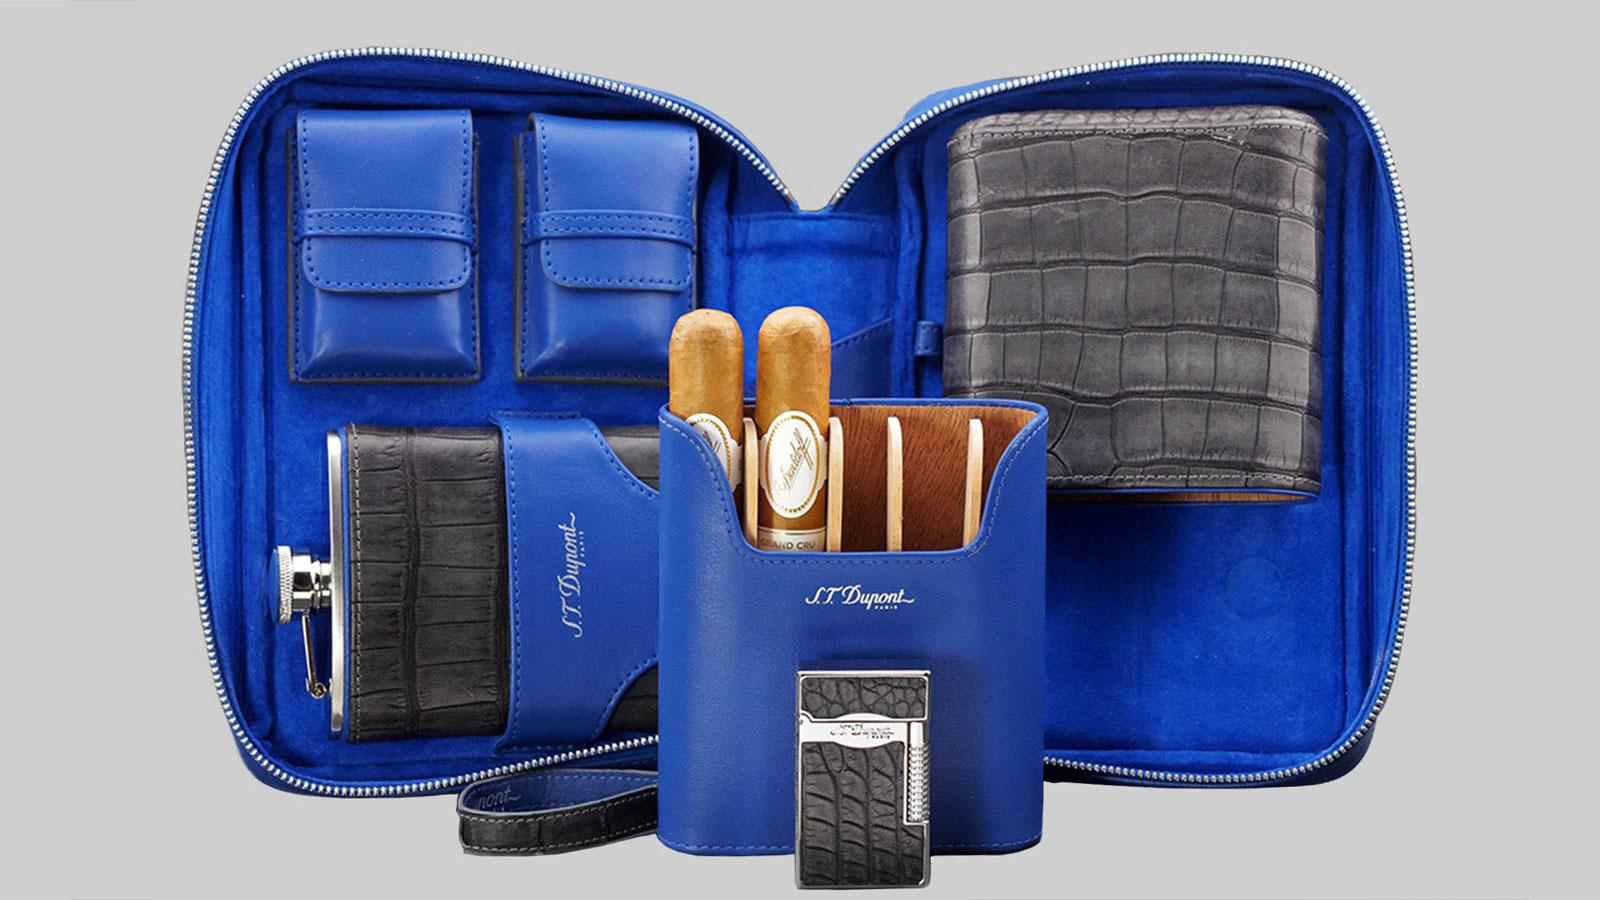 New Cigar Cases from S.T. Dupont, Padrón, Rocky Patel Available Now